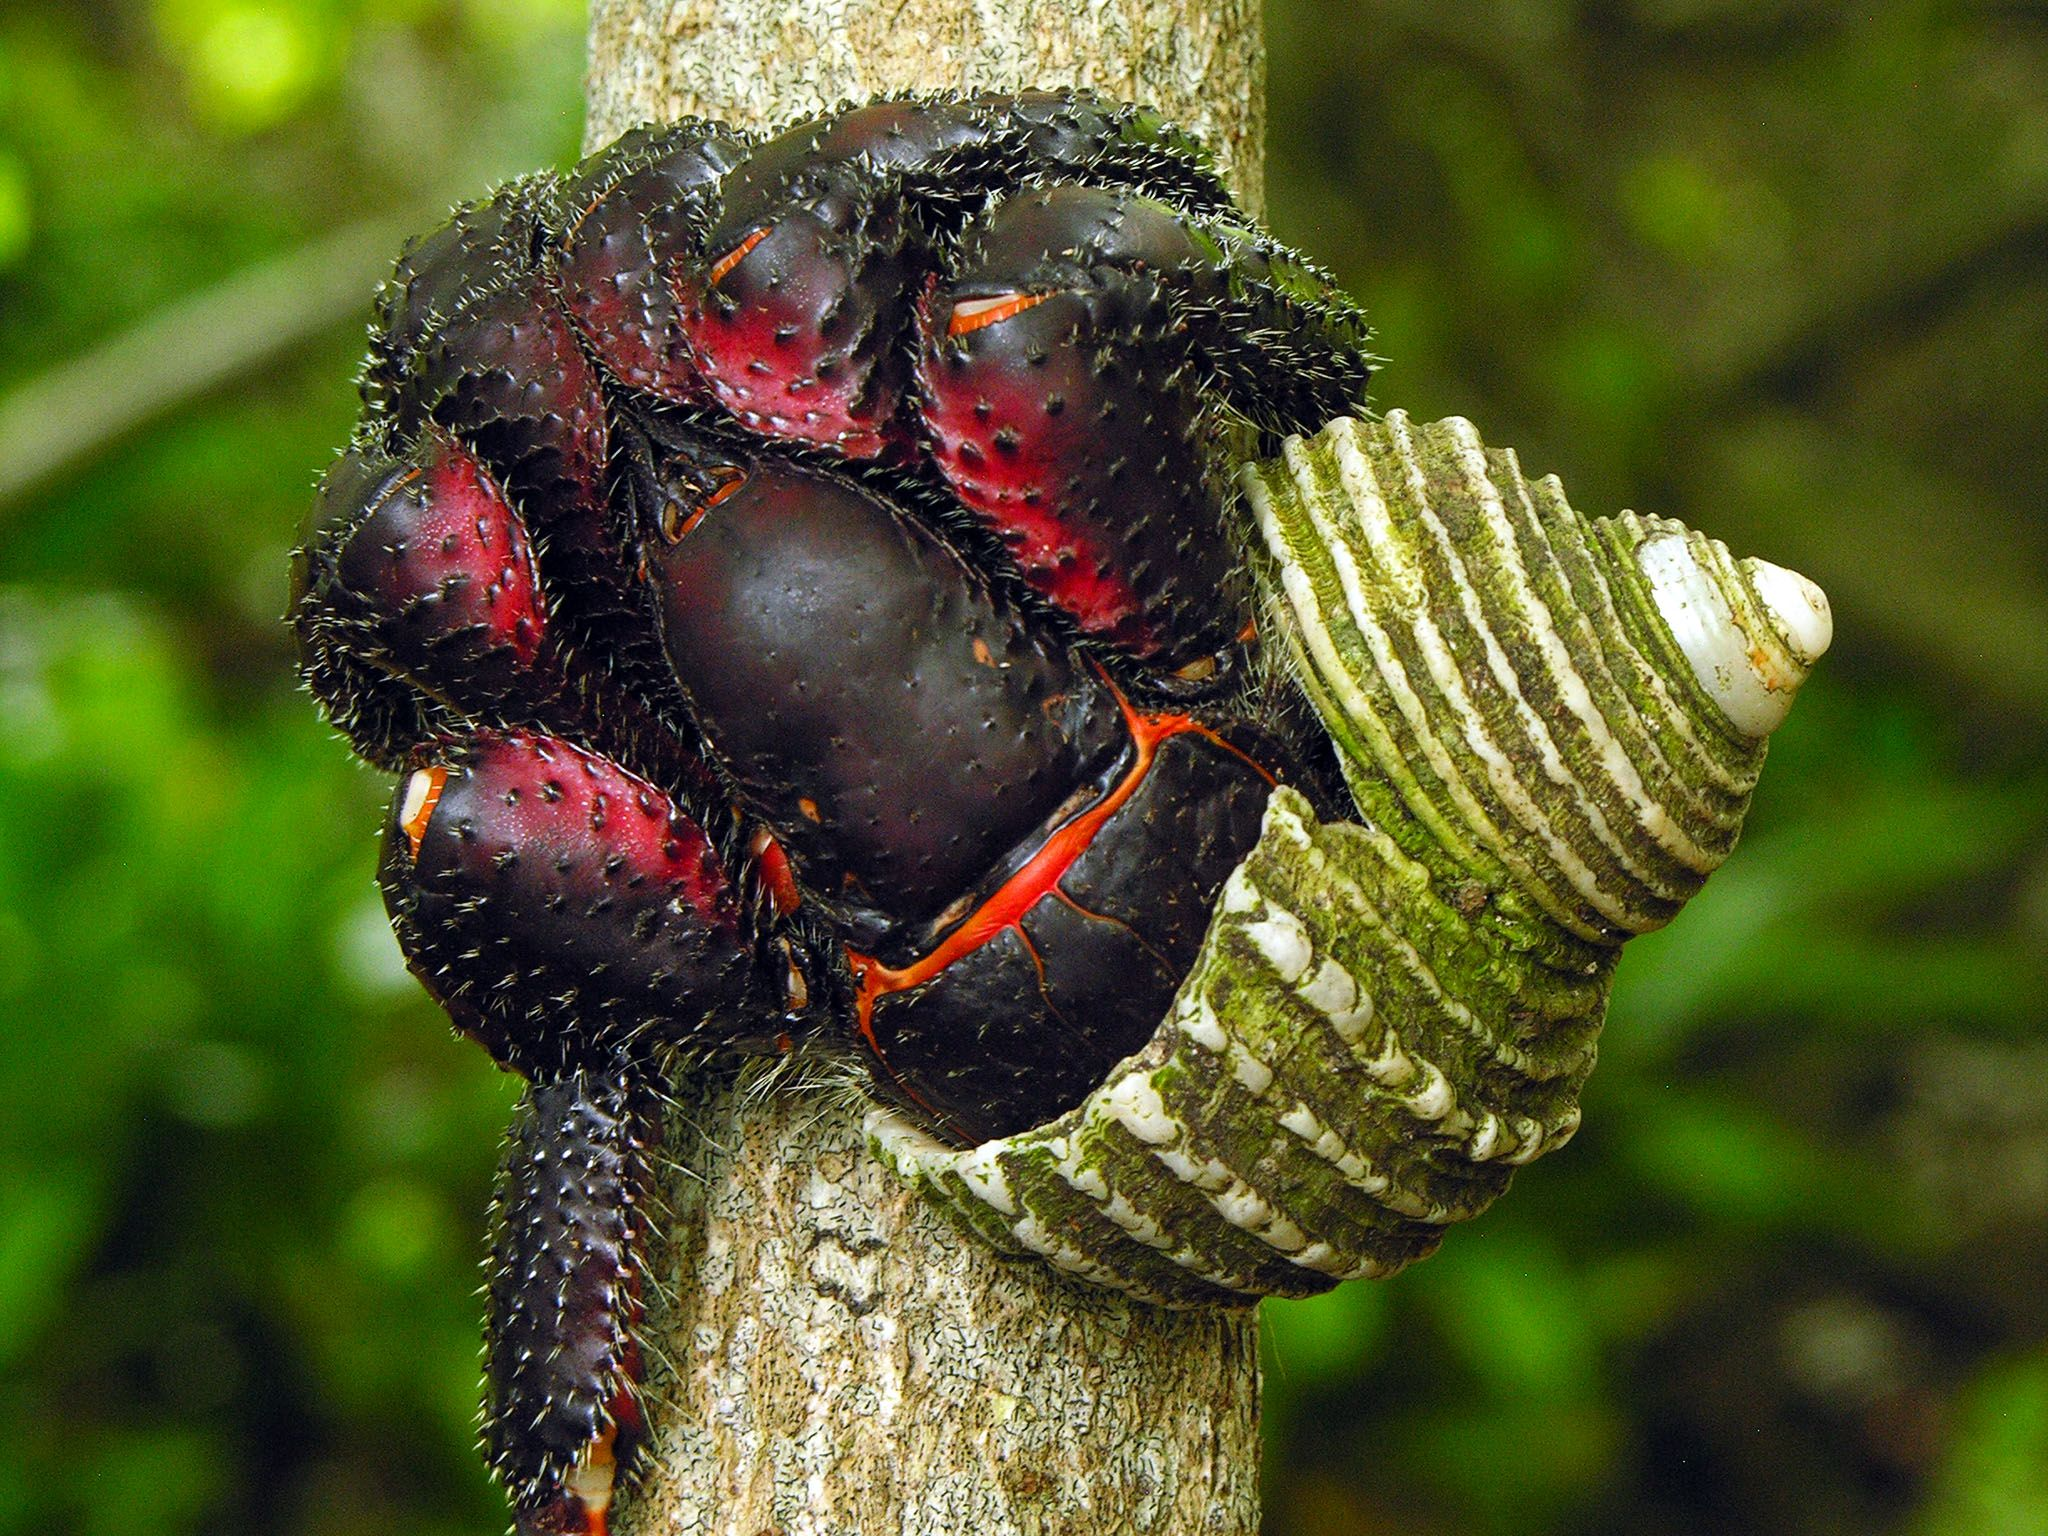 Henderson Island, Pitcairn Islands: A large, dark Hermit Crab climbs a tree. This image is from... [Photo of the day - October 2015]